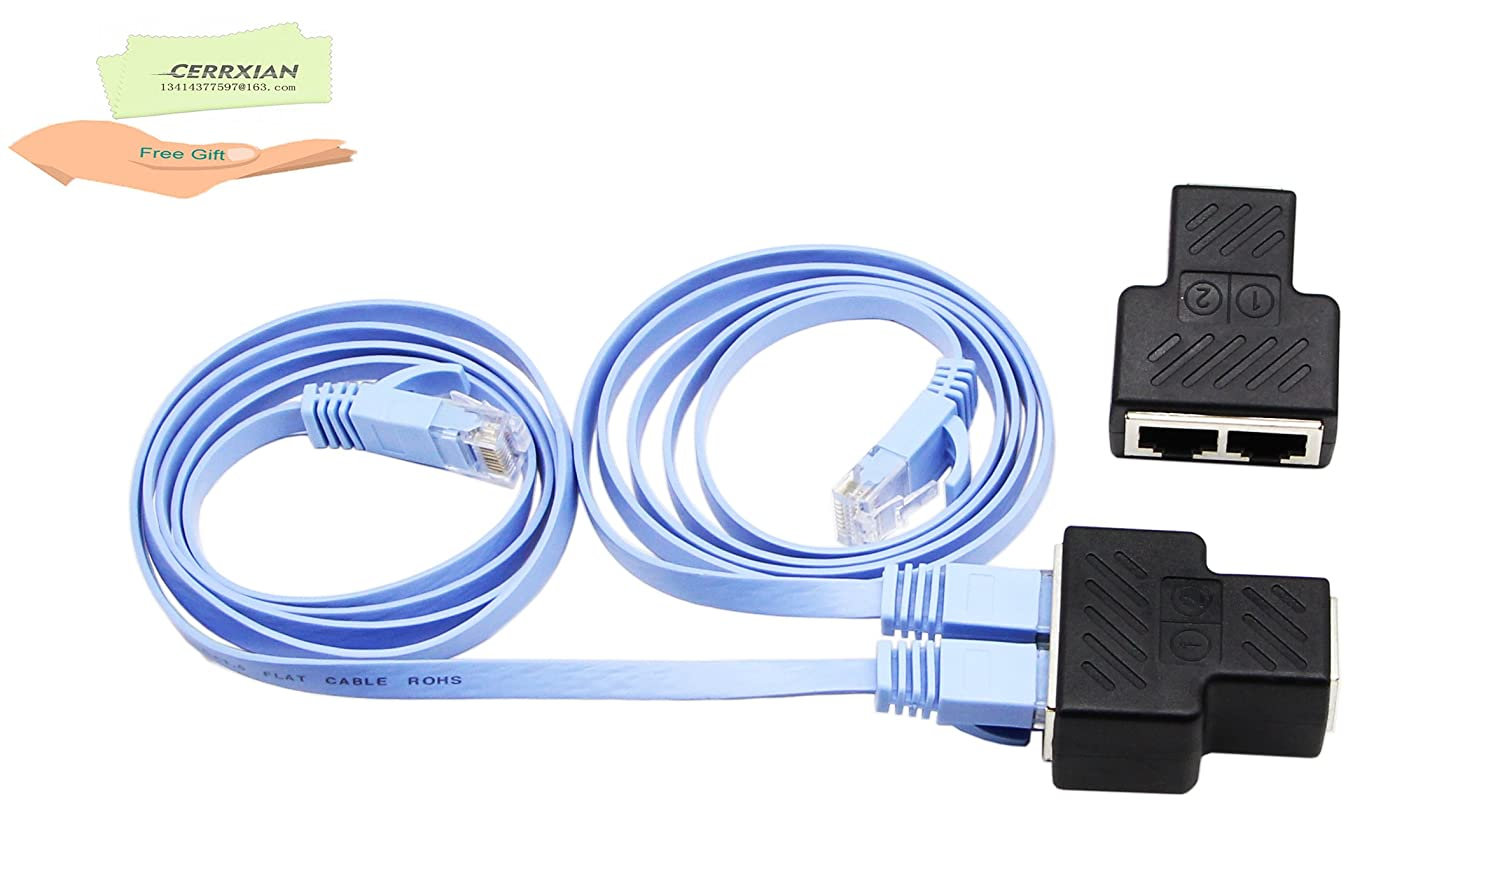 Cerrxian New Rj45 Splitter Adapter Ethernet Cable Cat5 Order Of The Bath And Cat6 Connectors Cat5e Cat7 Network Extension Connector Sharing Kit